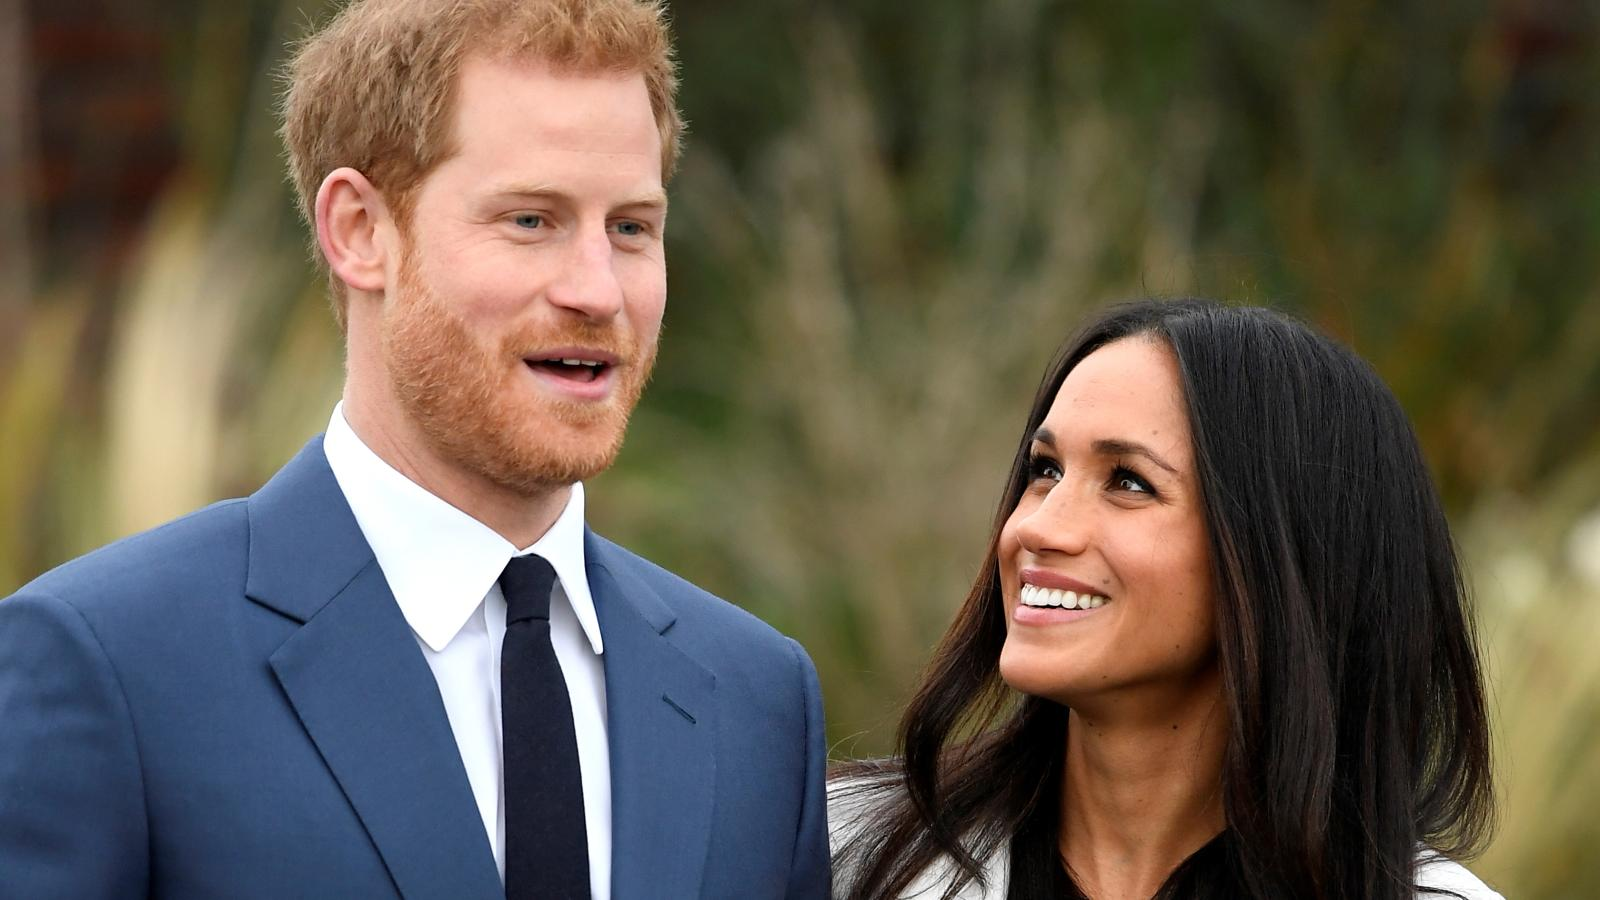 Britain S Royal Wedding How To Watch Meghan Markle And Prince